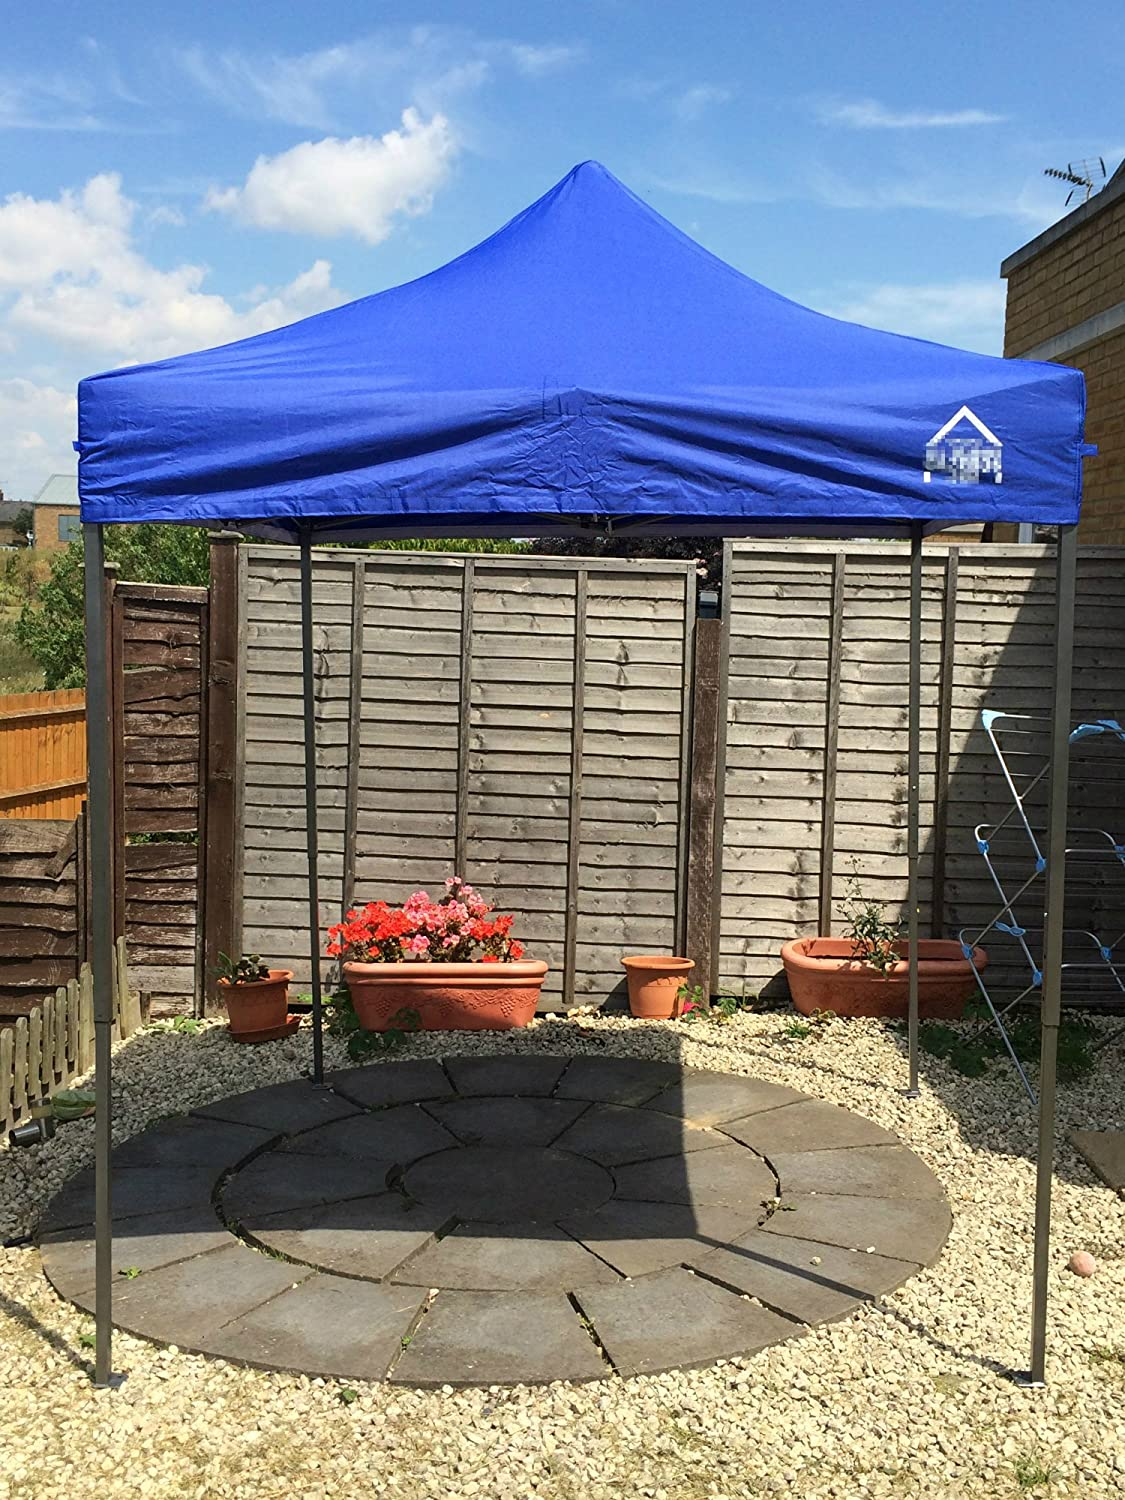 All Seasons Gazebos de 2 x 2 m Resistente, Totalmente Impermeable ...